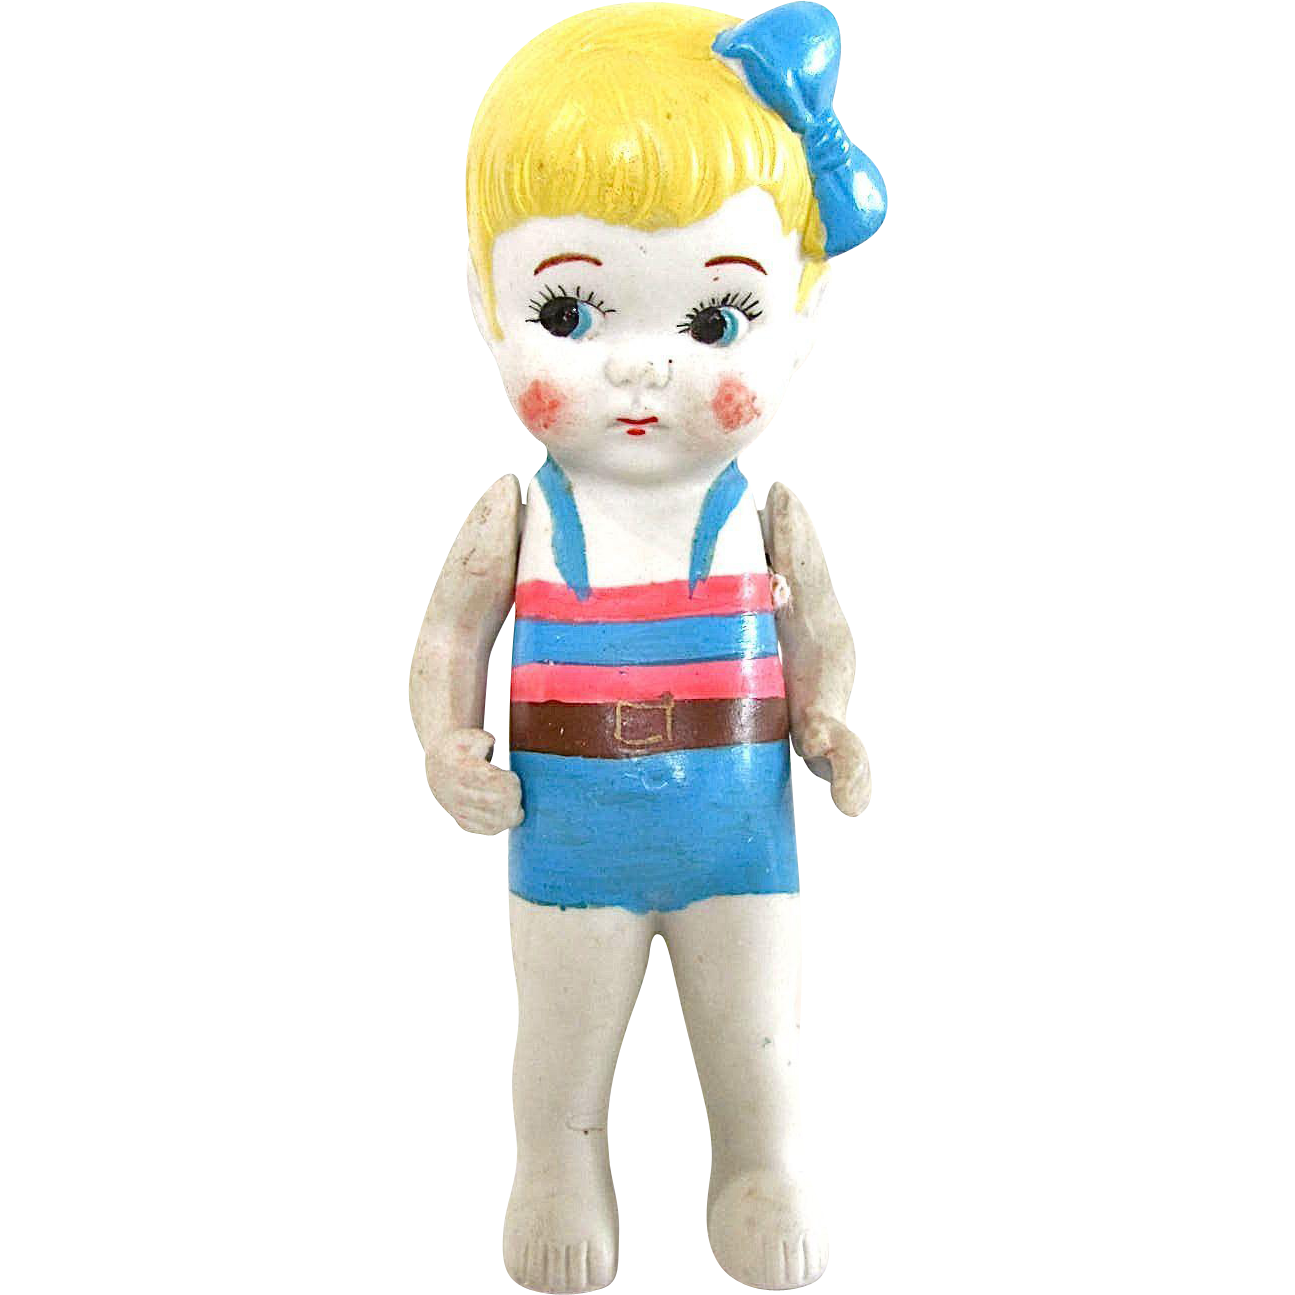 All Bisque Bathing Beauty, Wide-eyed Flapper, Made In Japan, Vintage Kewpie Type, Jointed Arms, 6.5-Inch Doll